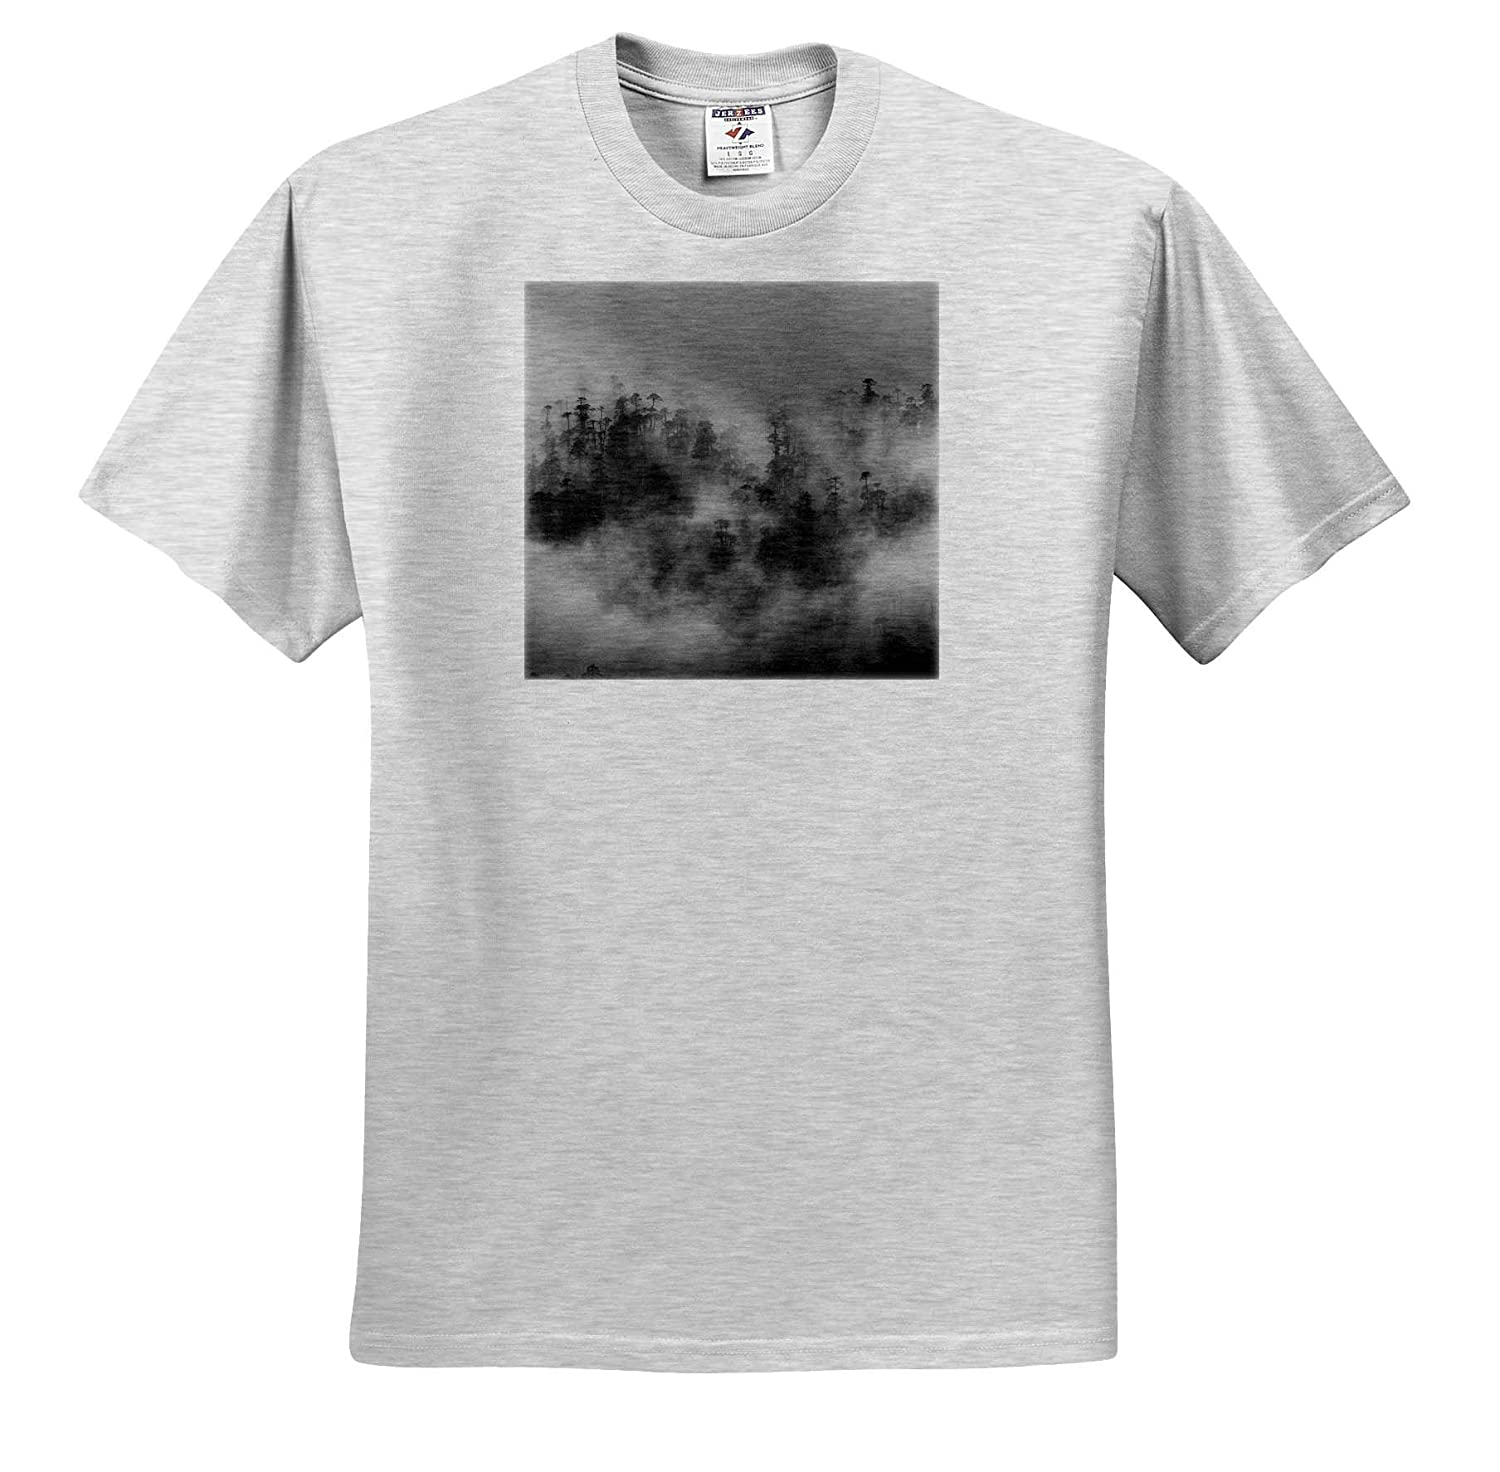 Bhutan 3dRose Danita Delimont Misty Forest ts/_312586 Adult T-Shirt XL Paro Valley Forests